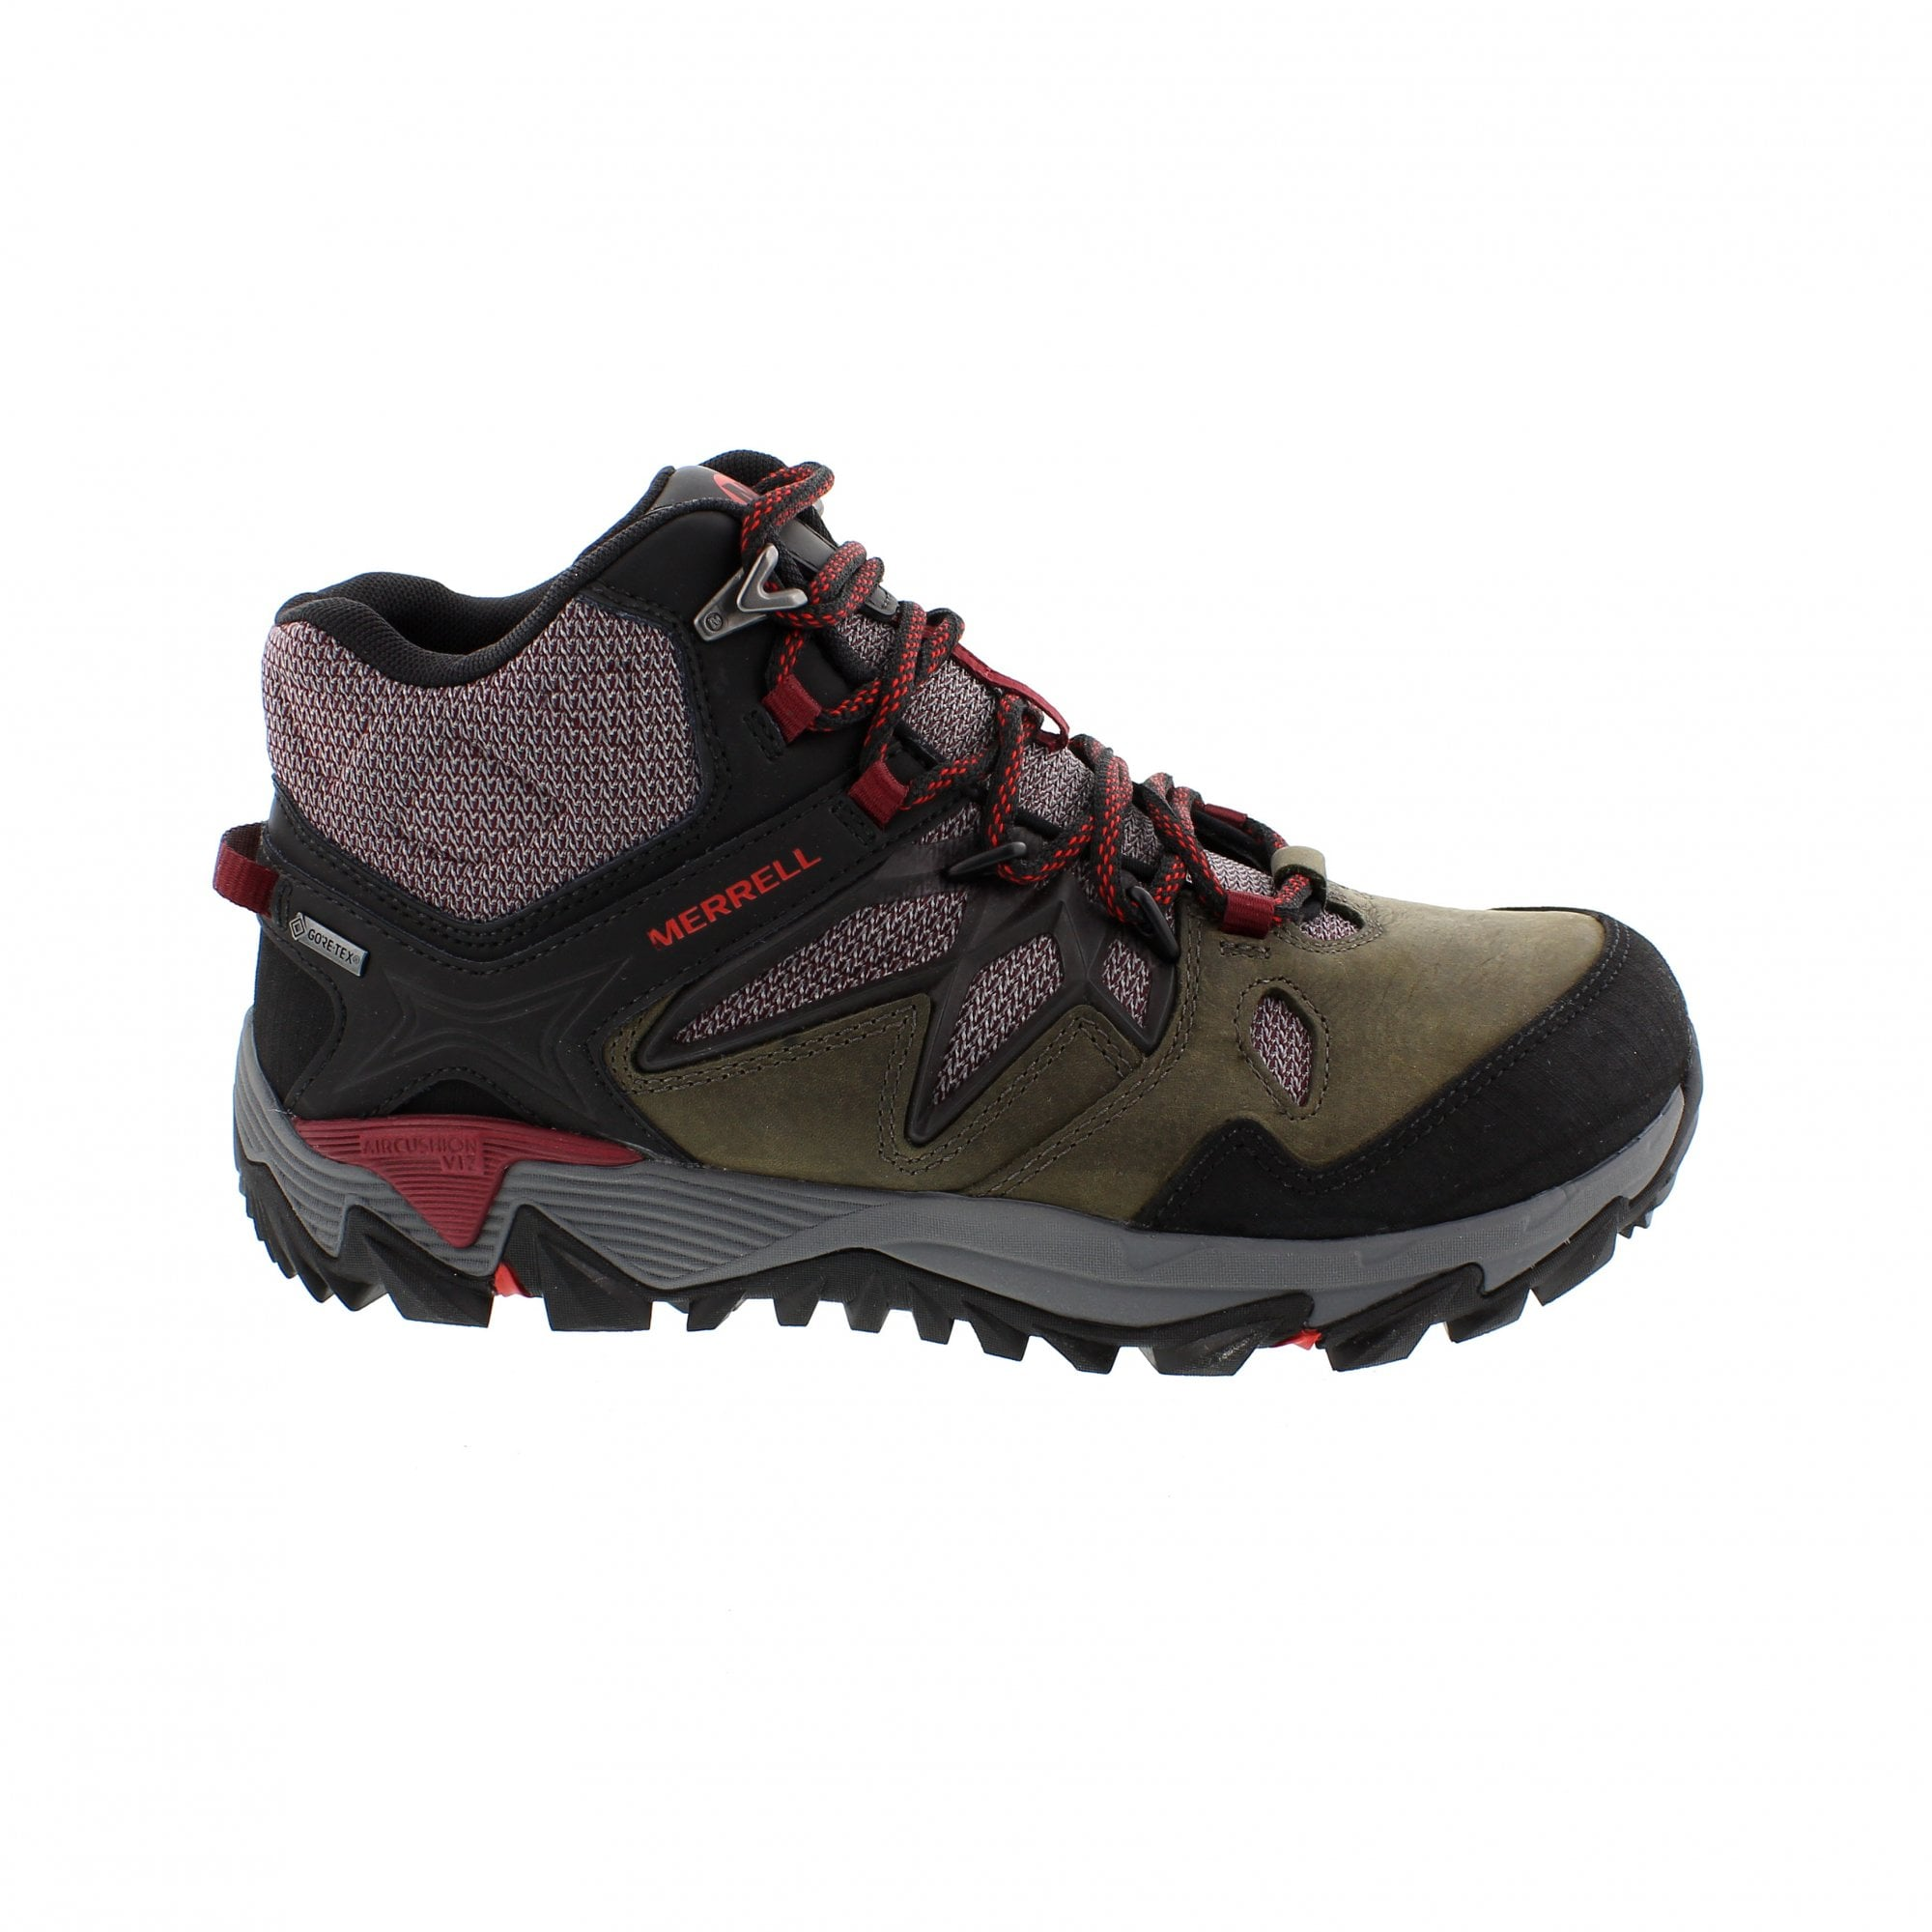 Ladies Merrell Casual Gore tex Walking Boots All Out Blaze 2 Mid